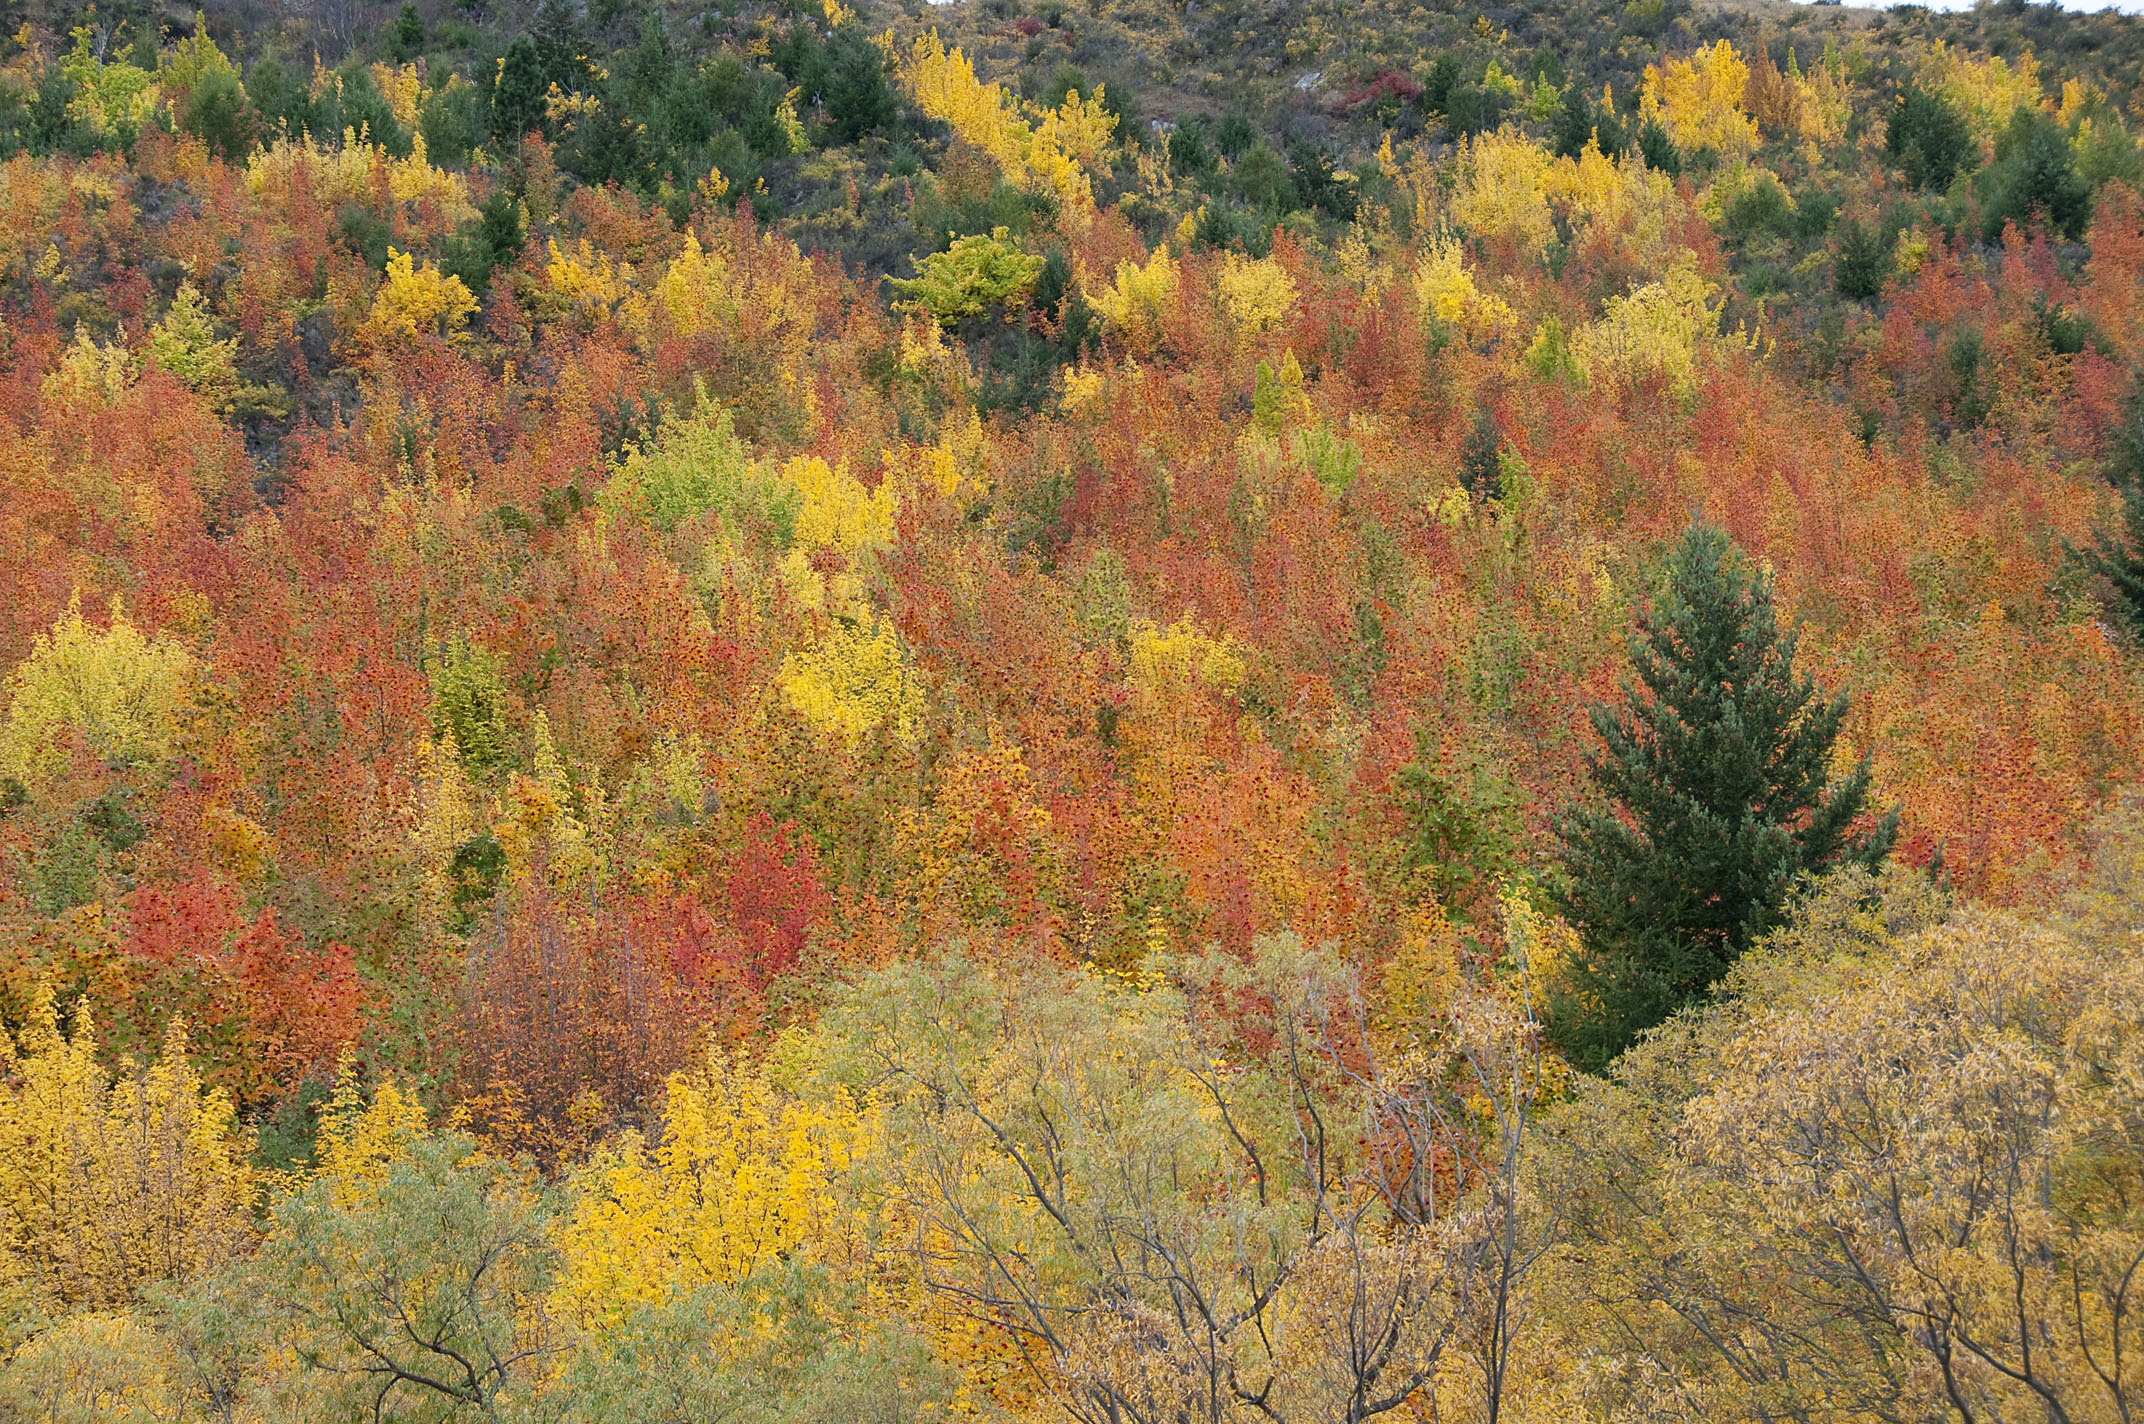 autumn_leaves_20110416_Arrowtown_NZ_1.jpg